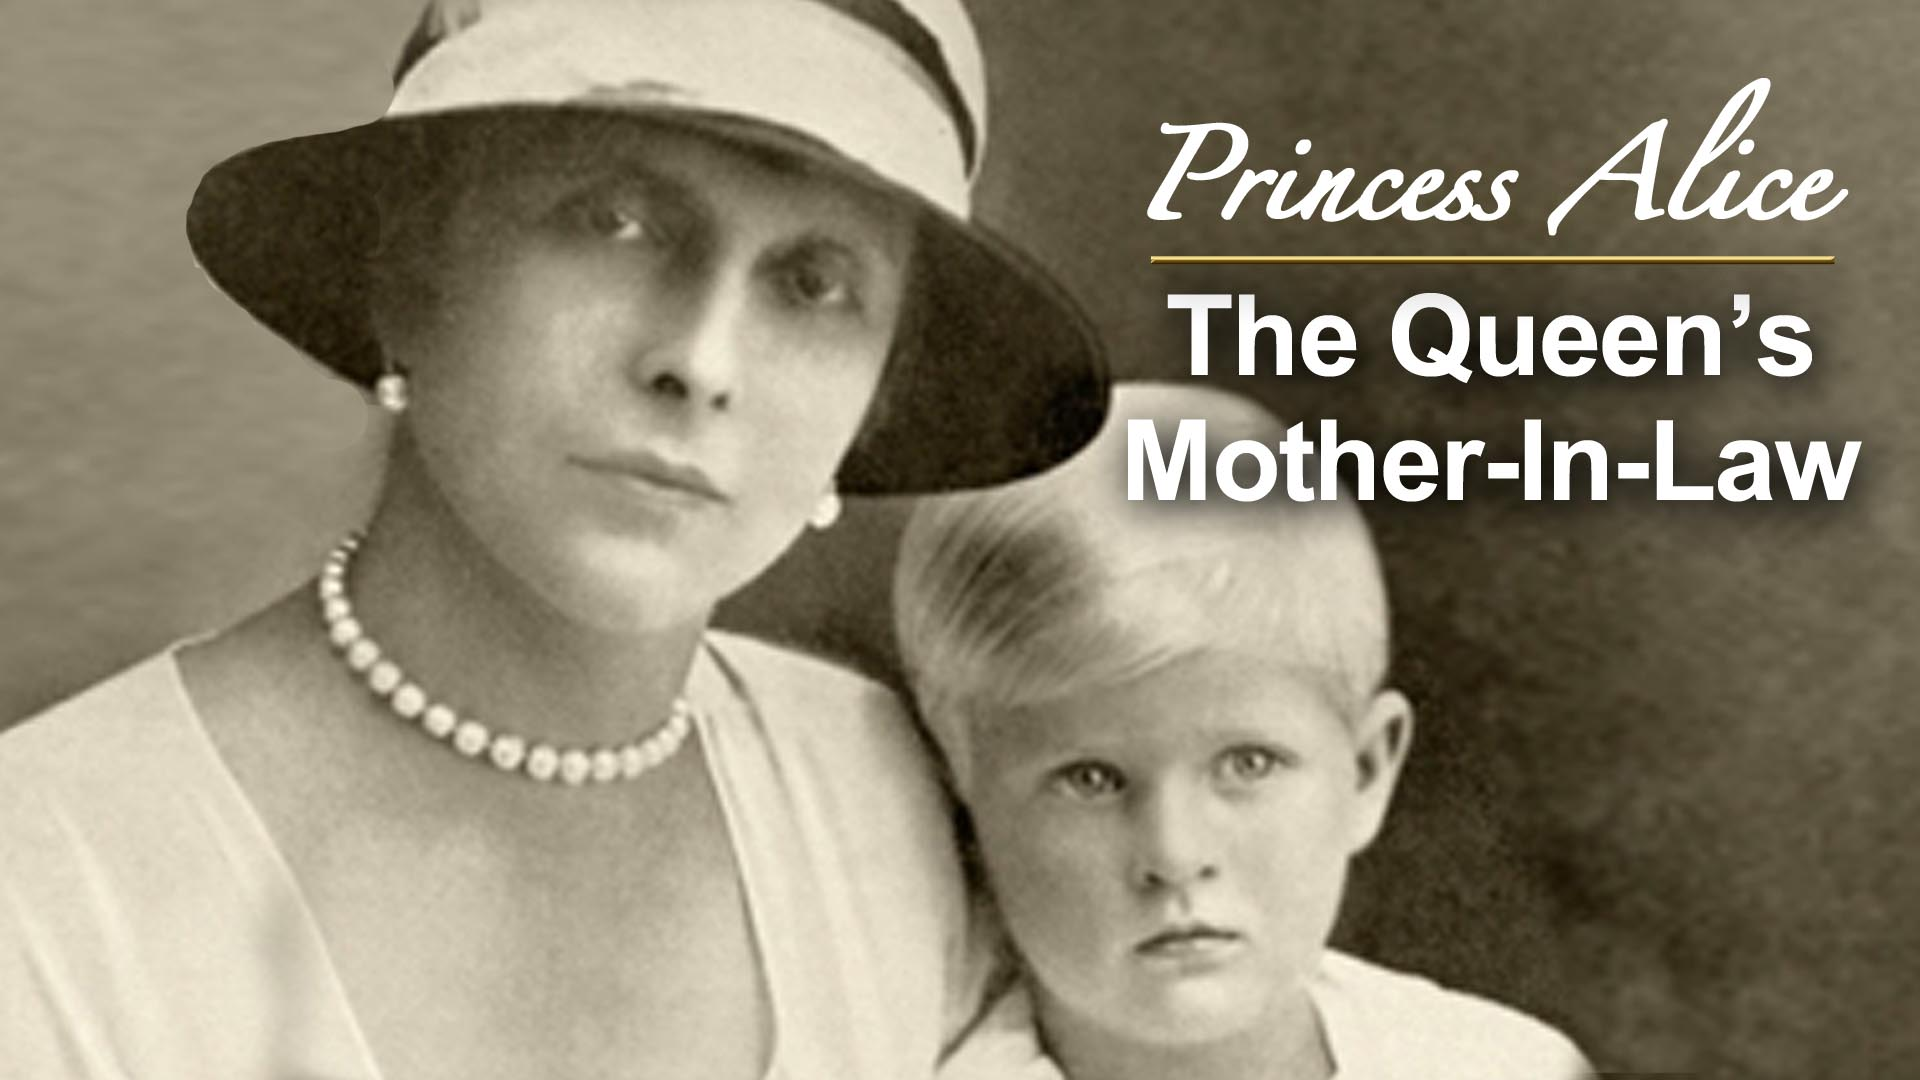 Princess Alice: The Queen's Mother-In-Law